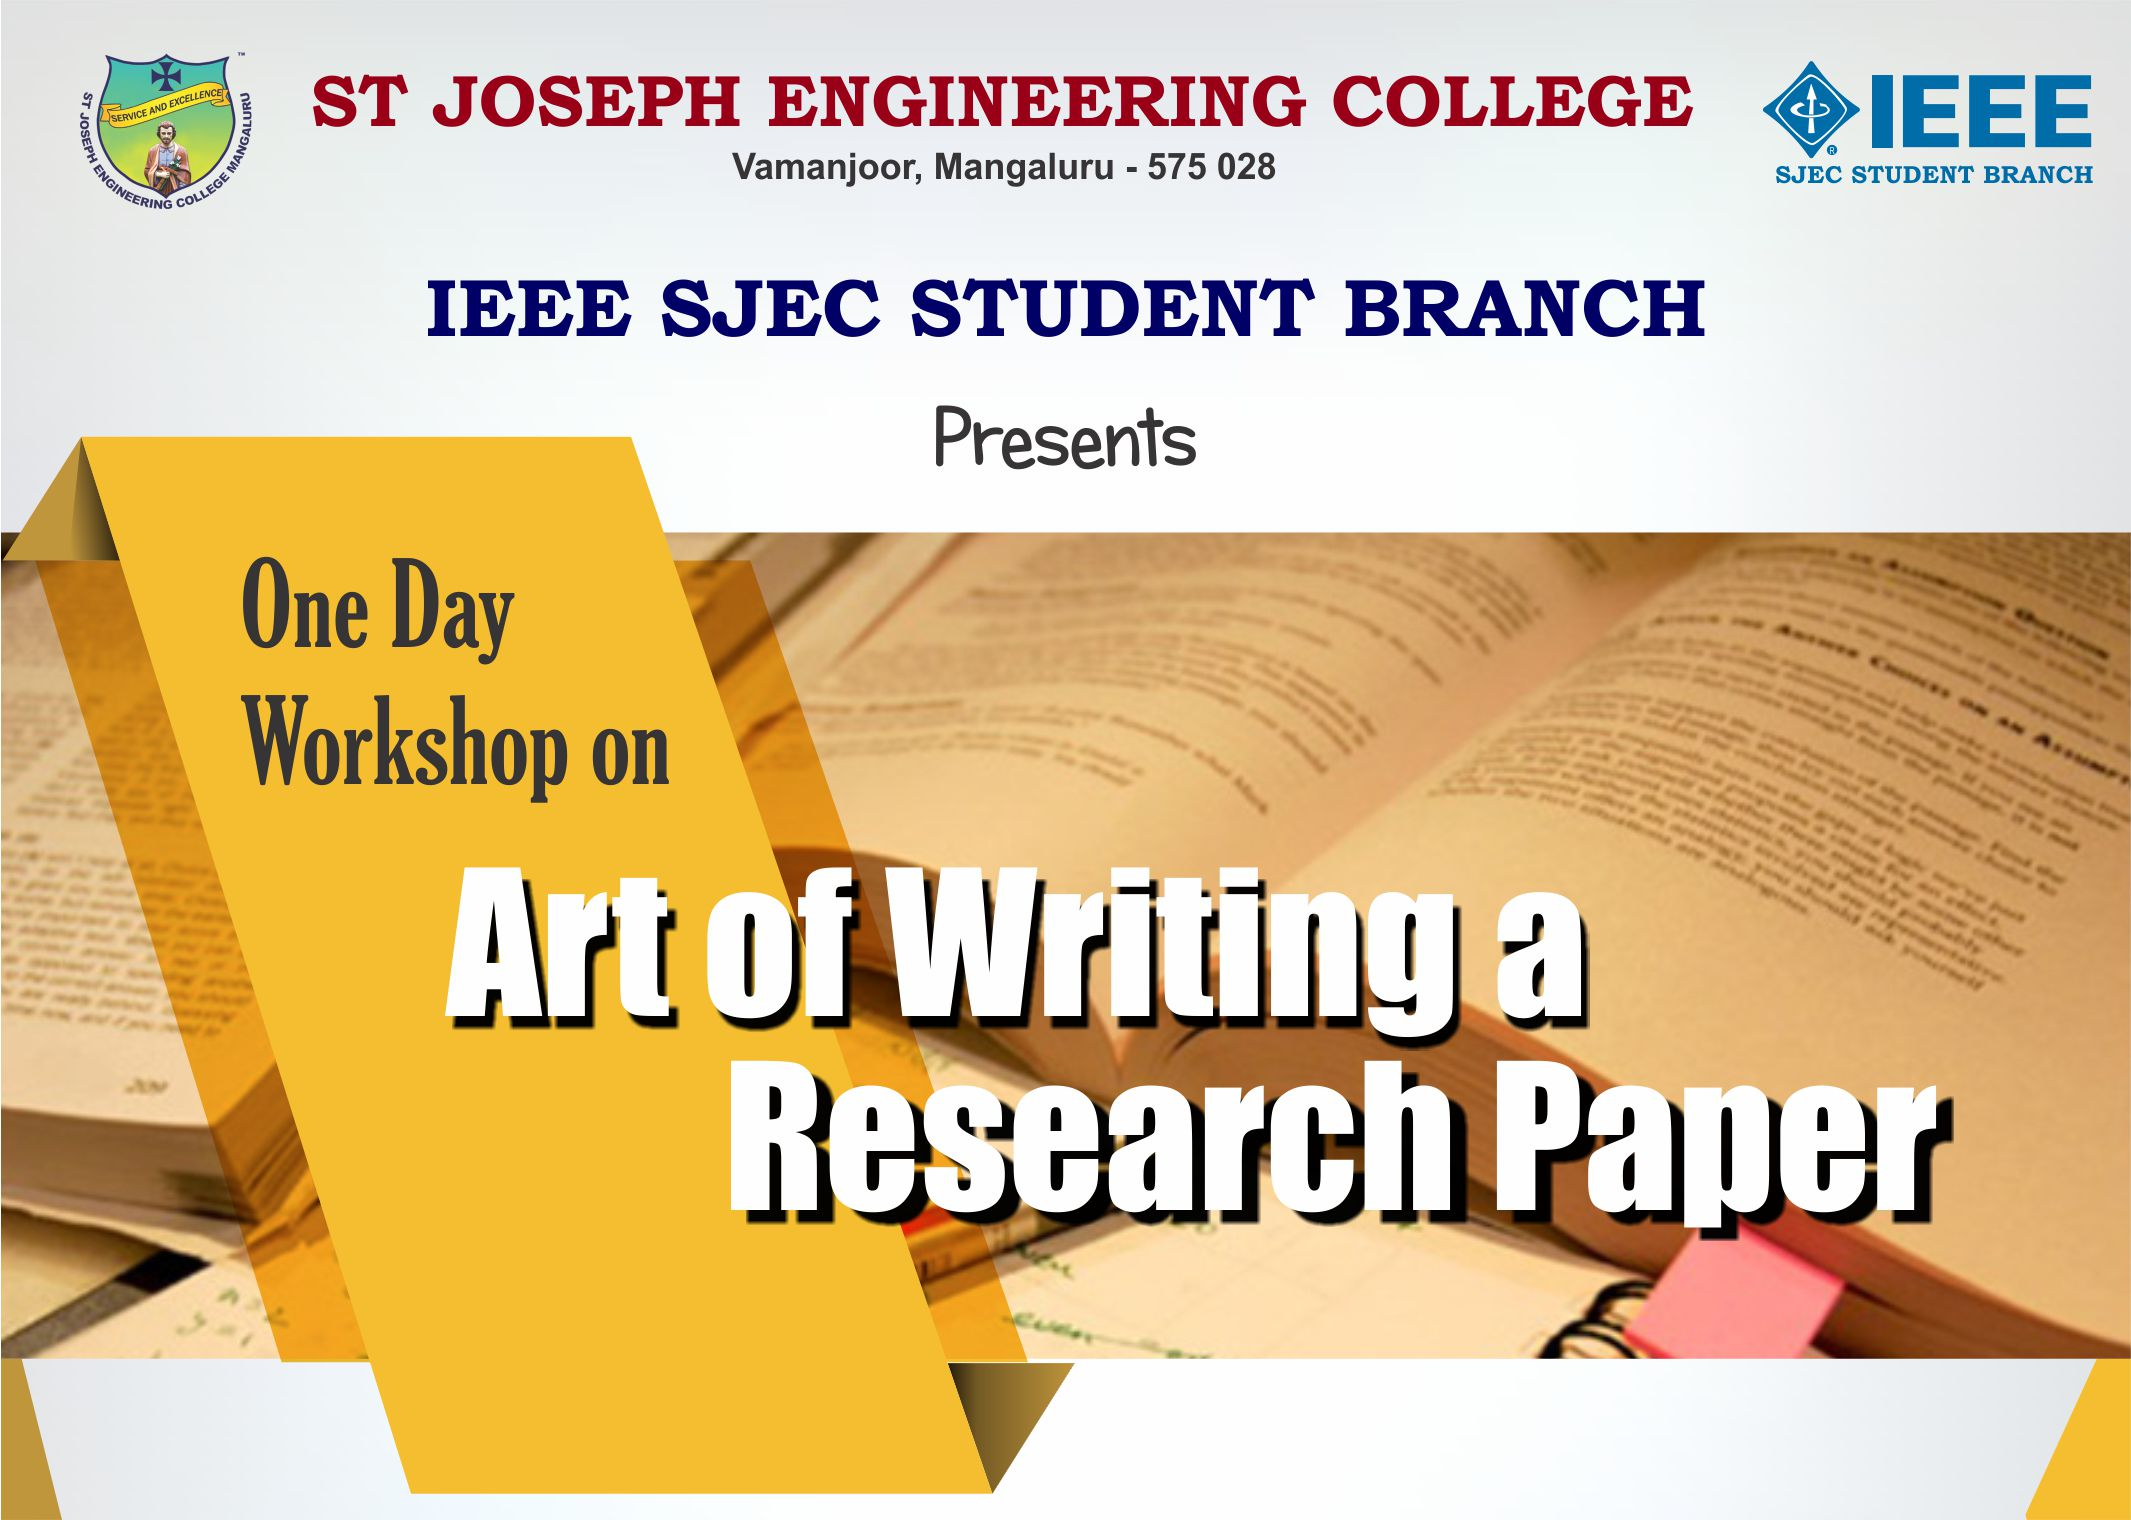 006 Workshop Banner Writing Of Research Fascinating Paper Great Pdf Harvard Style Sample Full